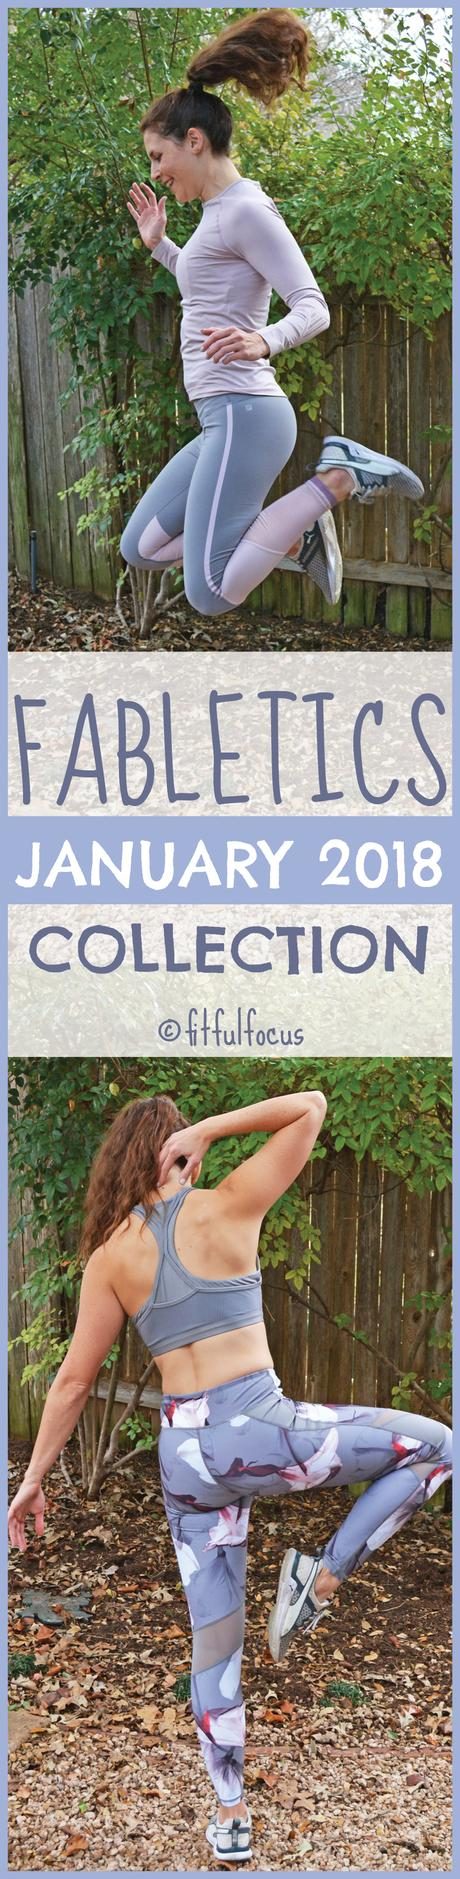 Fabletics January 2018 Collection